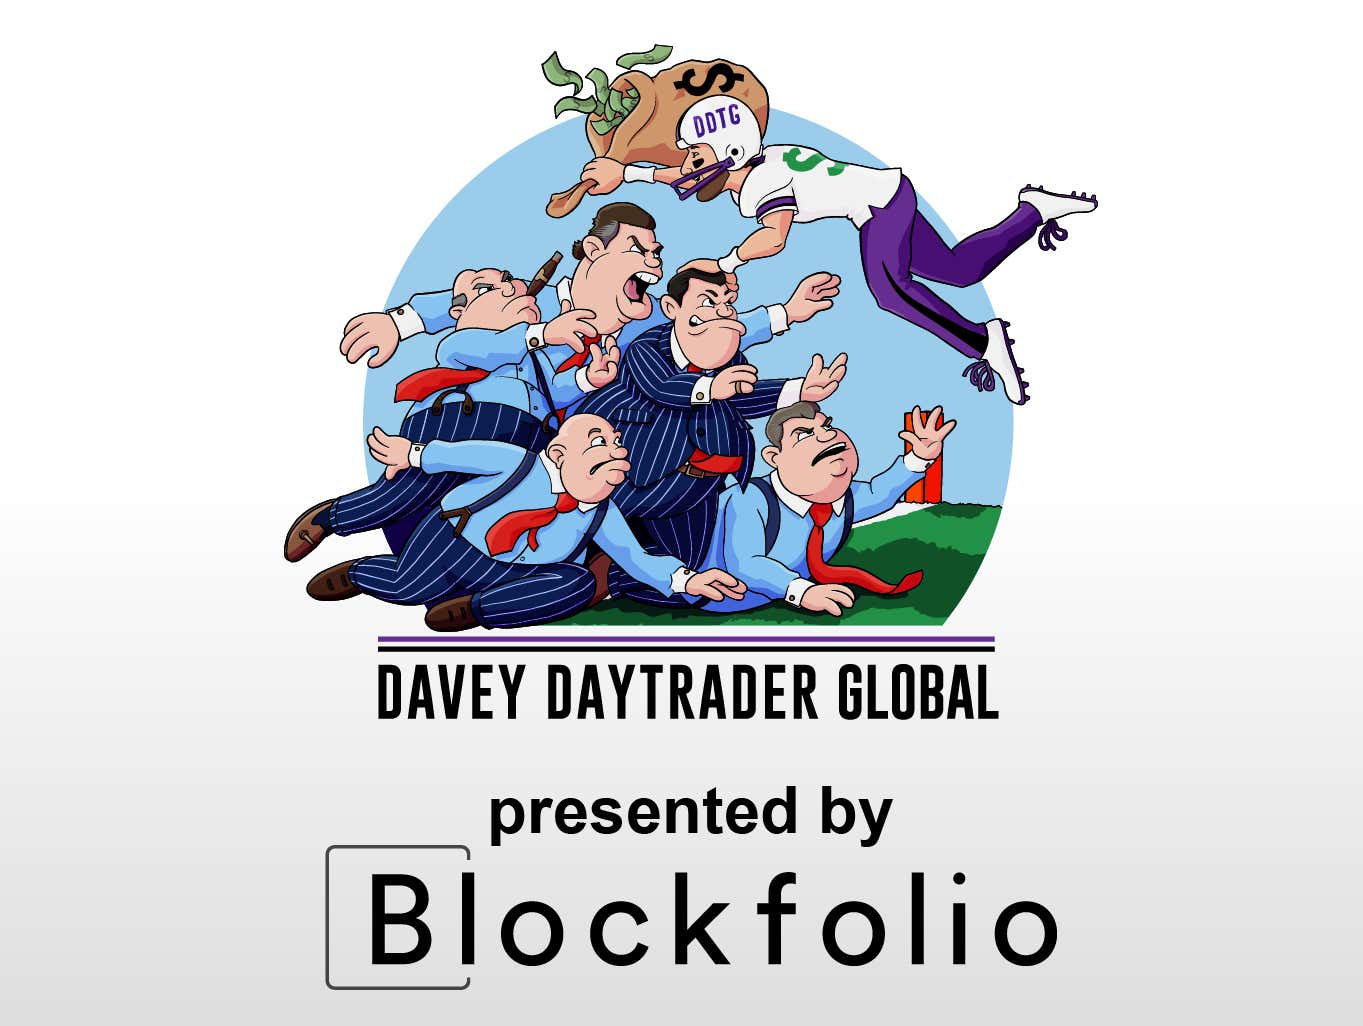 Davey Day Trader presented by Blockfolio - May 11, 2021